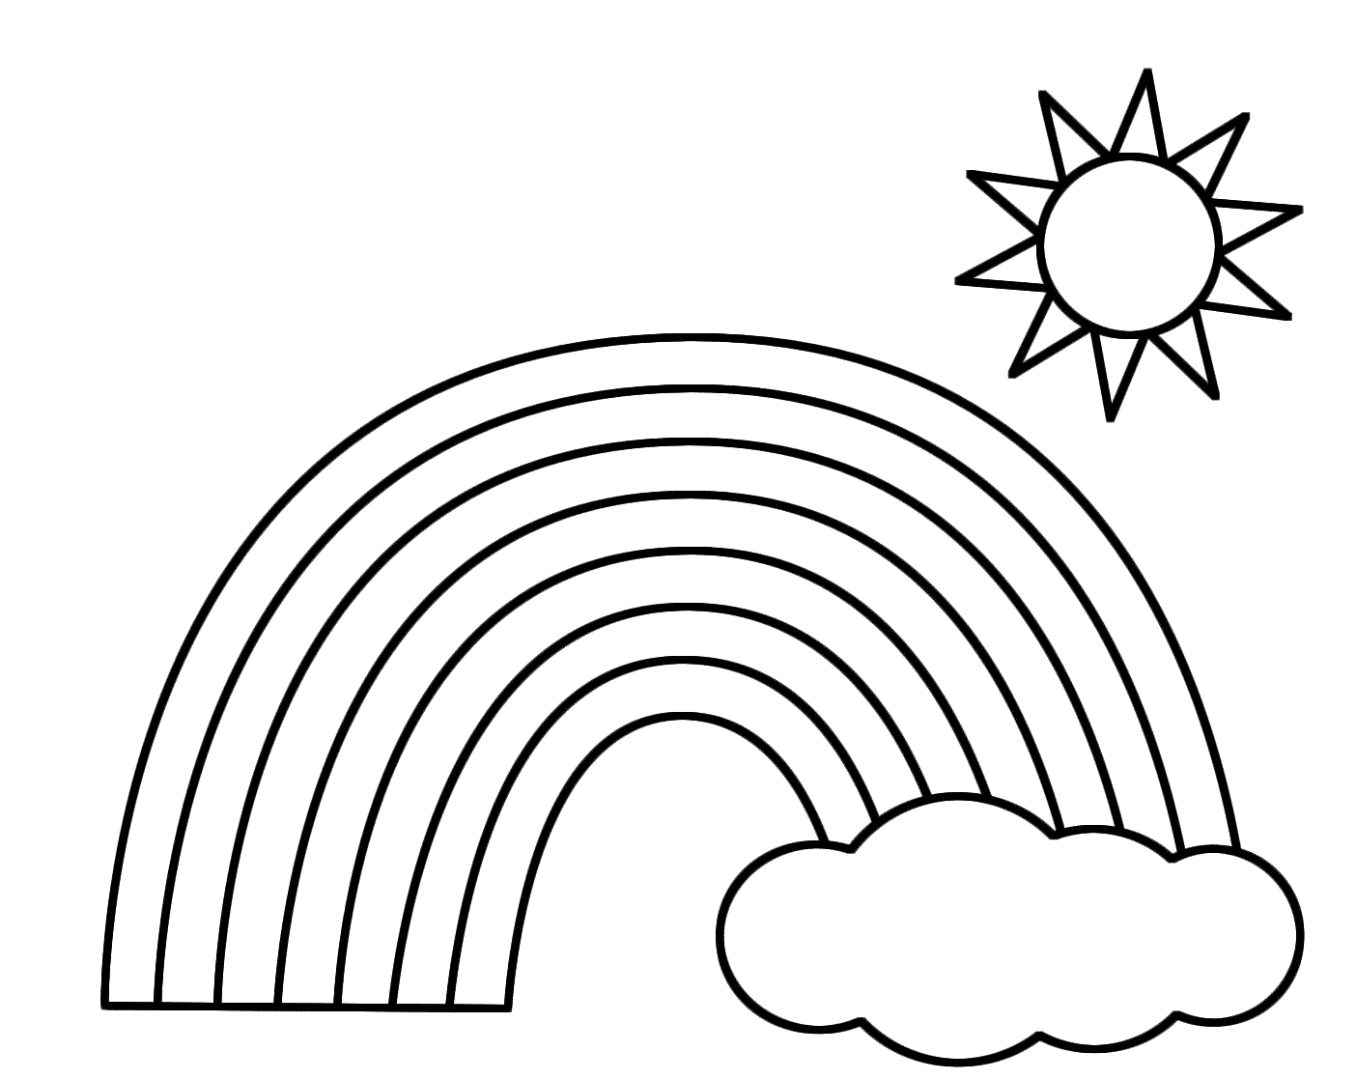 printable rainbow coloring page rainbow coloring pages for childrens printable for free printable coloring rainbow page